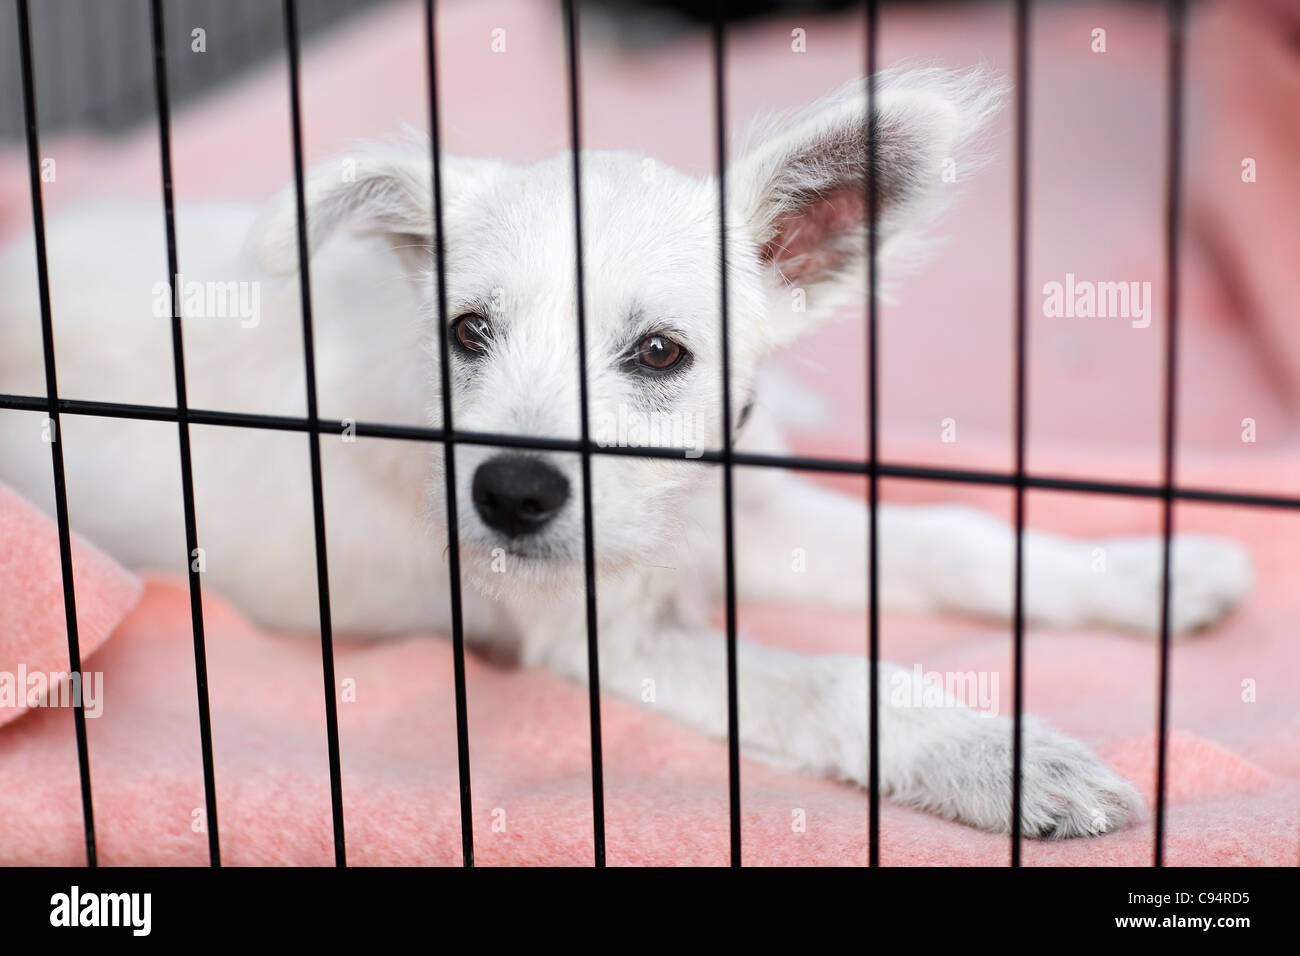 Puppy in cage, waiting for adoption at an animal shelter. - Stock Image